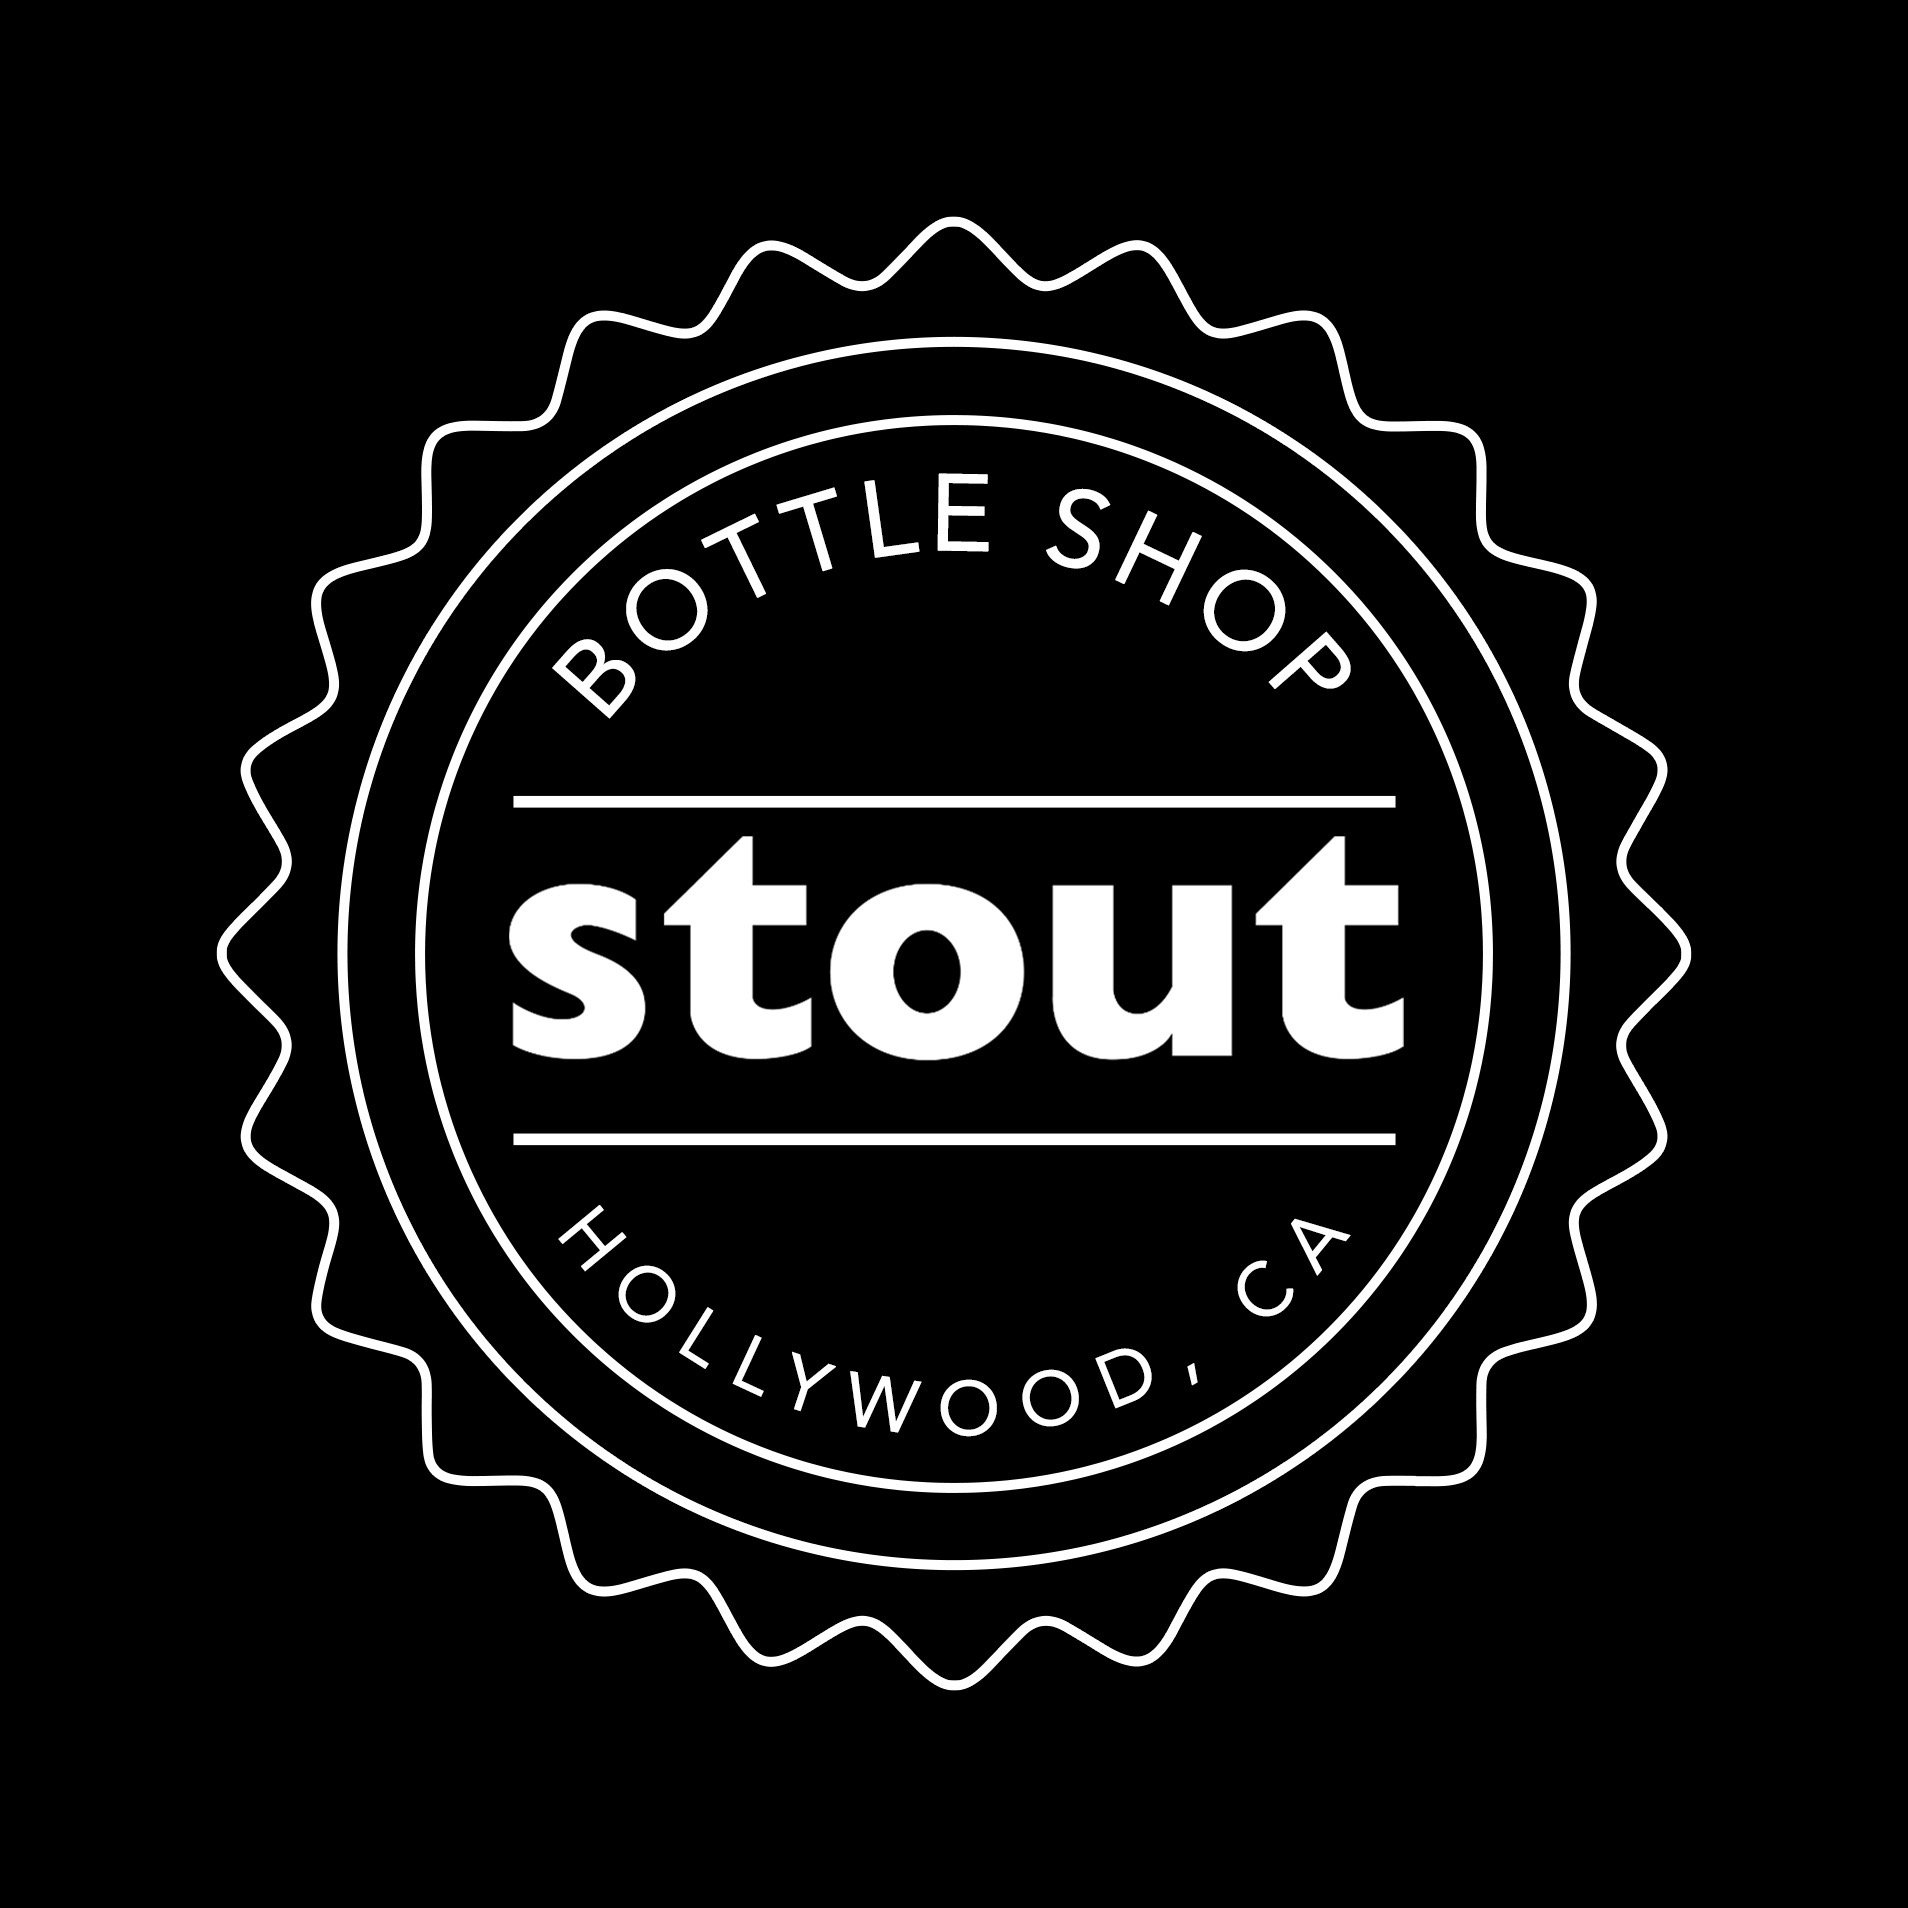 Stout Bottle Shop